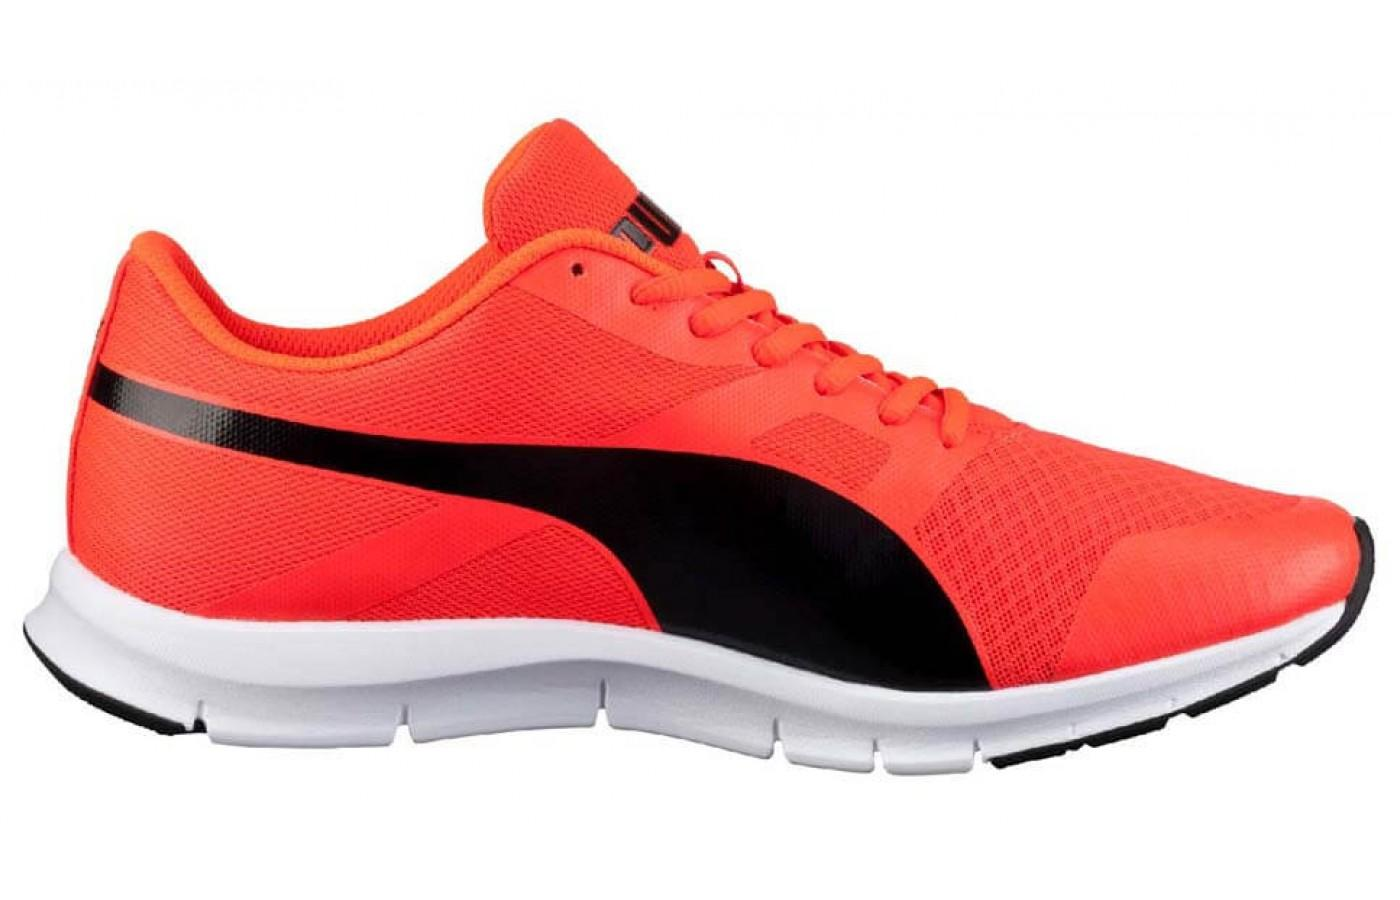 The Puma Flex Racer is extremely lightweight